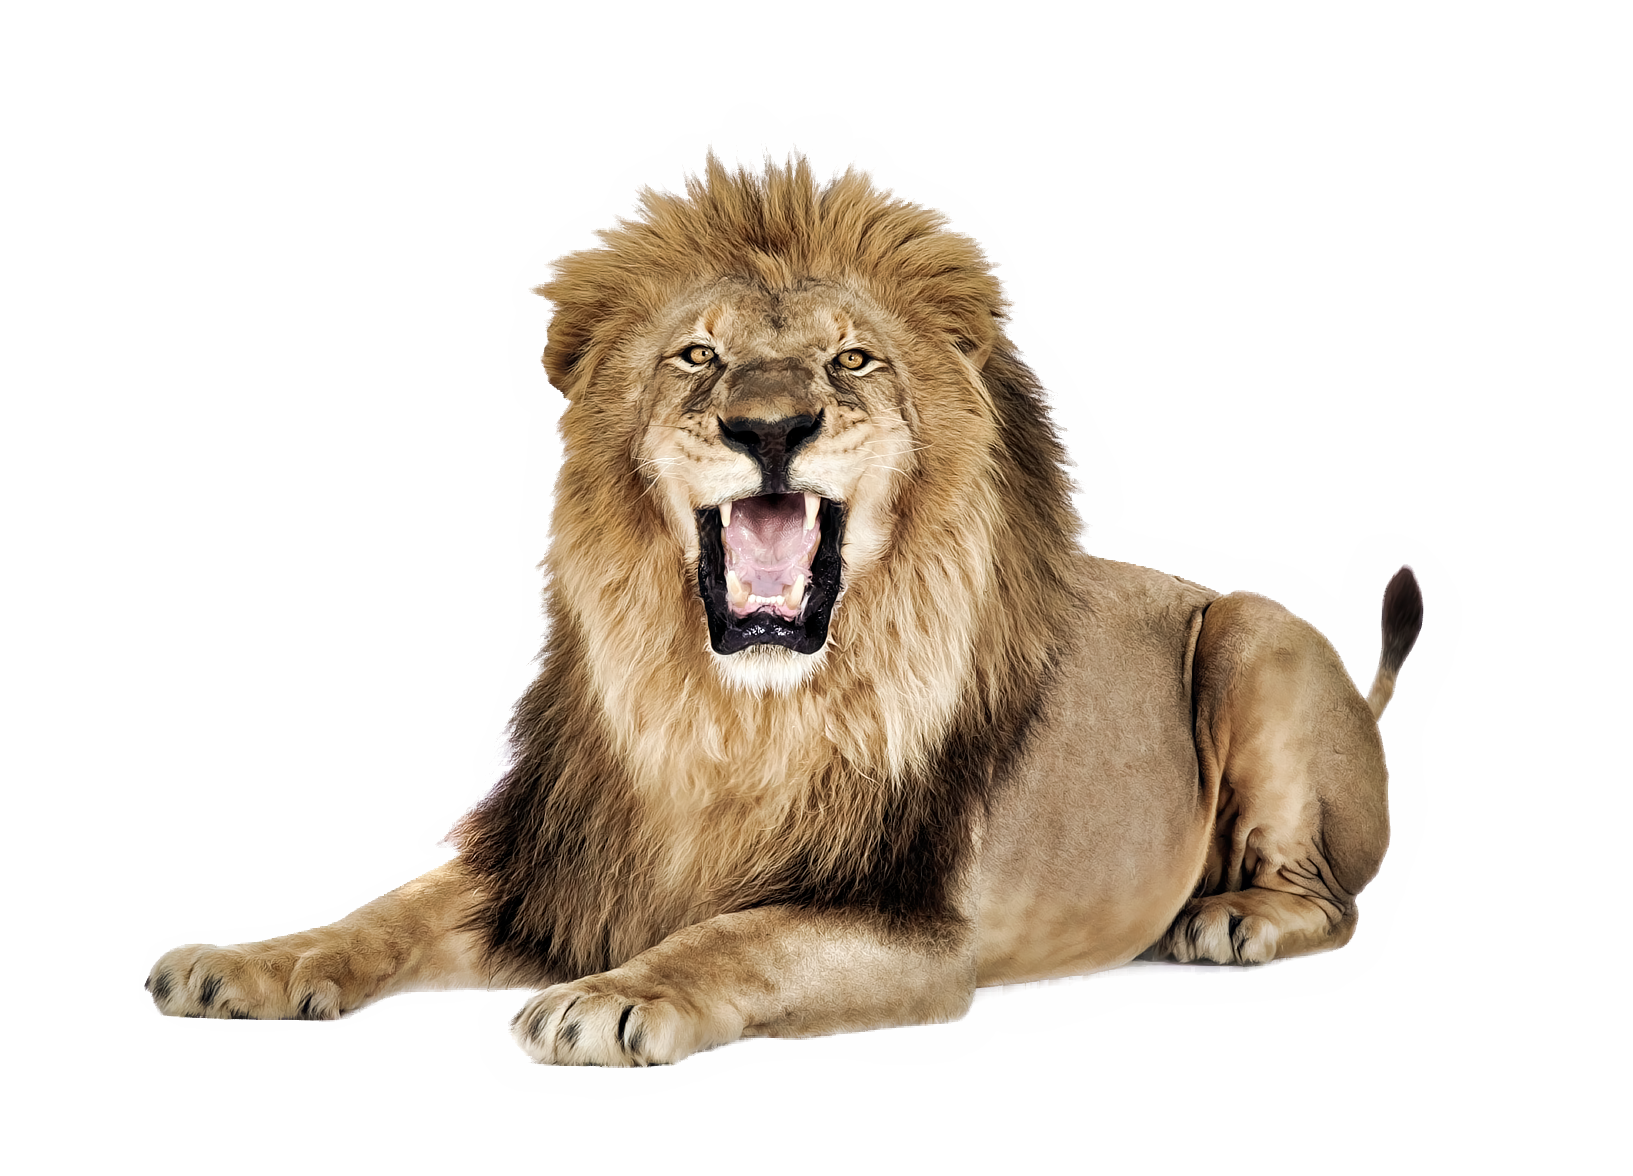 Lion Png PNG Image - PNG Images